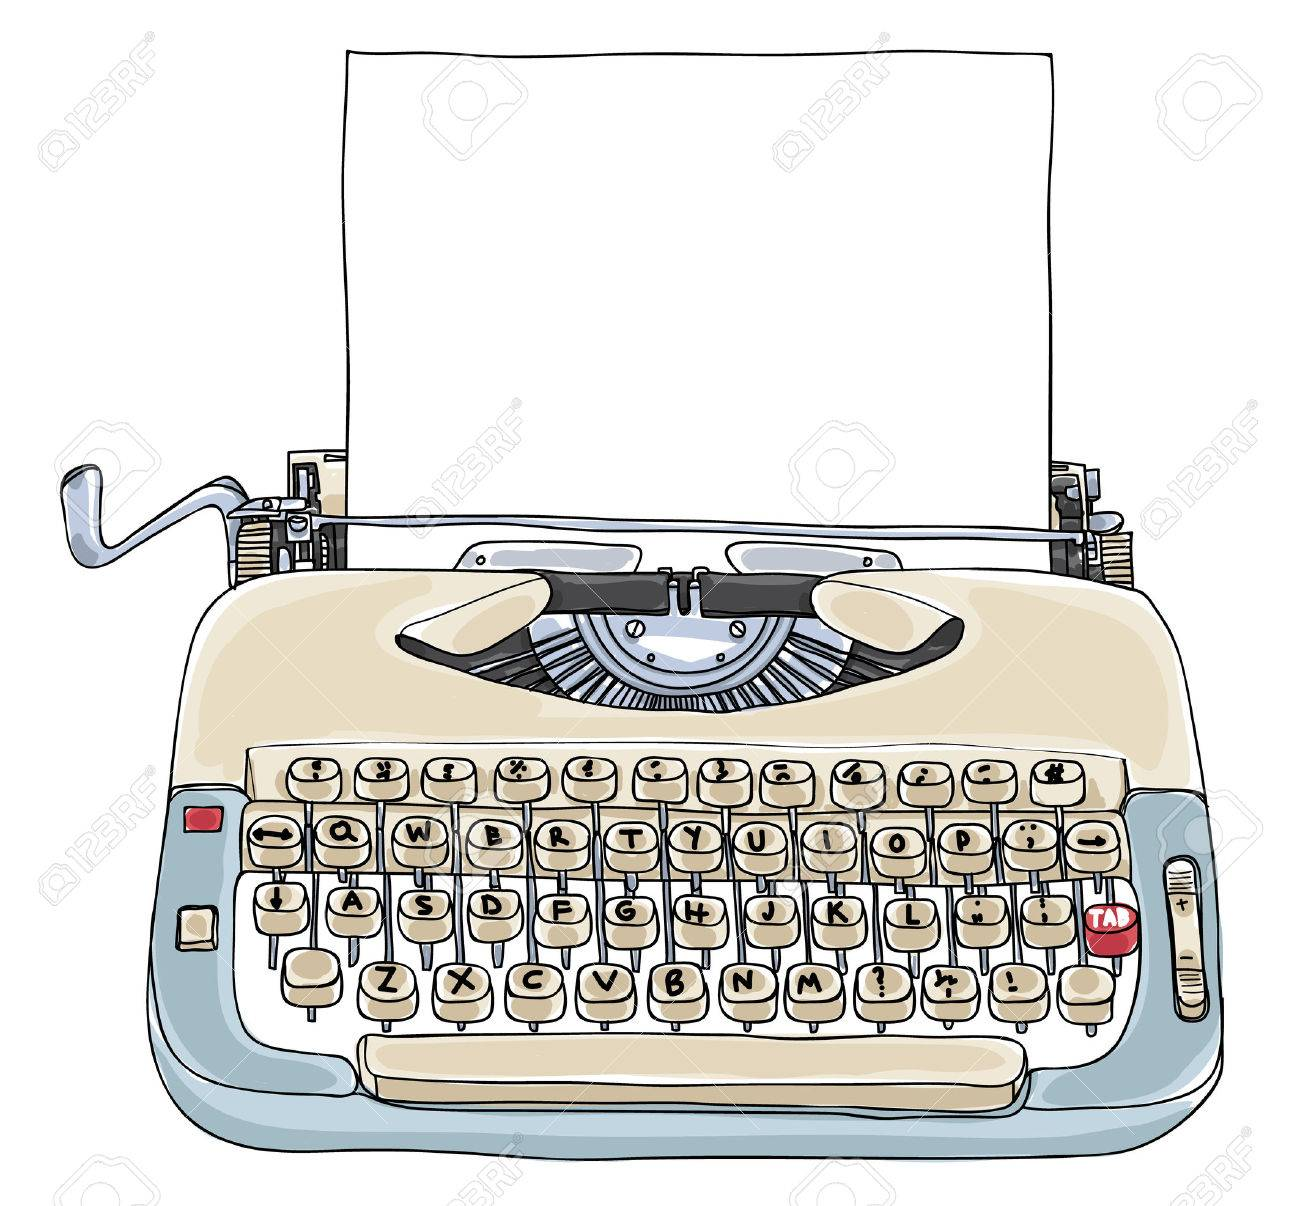 Typewriter Creme and Blue with blank paper vintage art cute illustration - 68789173